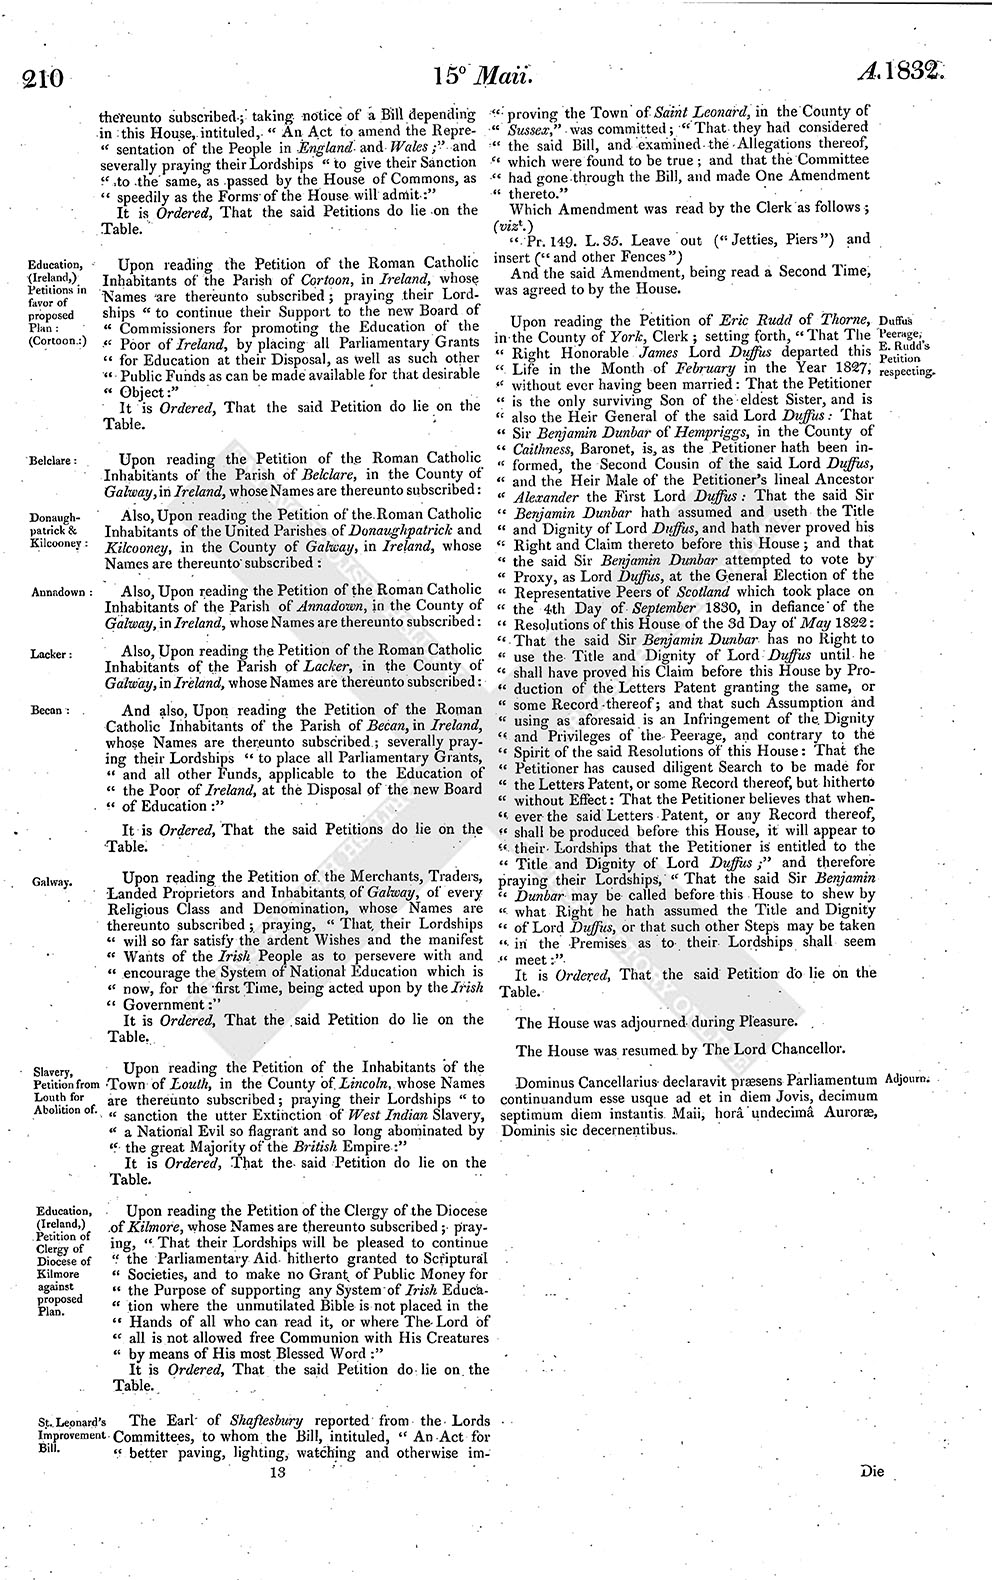 House of Lords Journal Volume 64: 15 May 1832 | British History Online